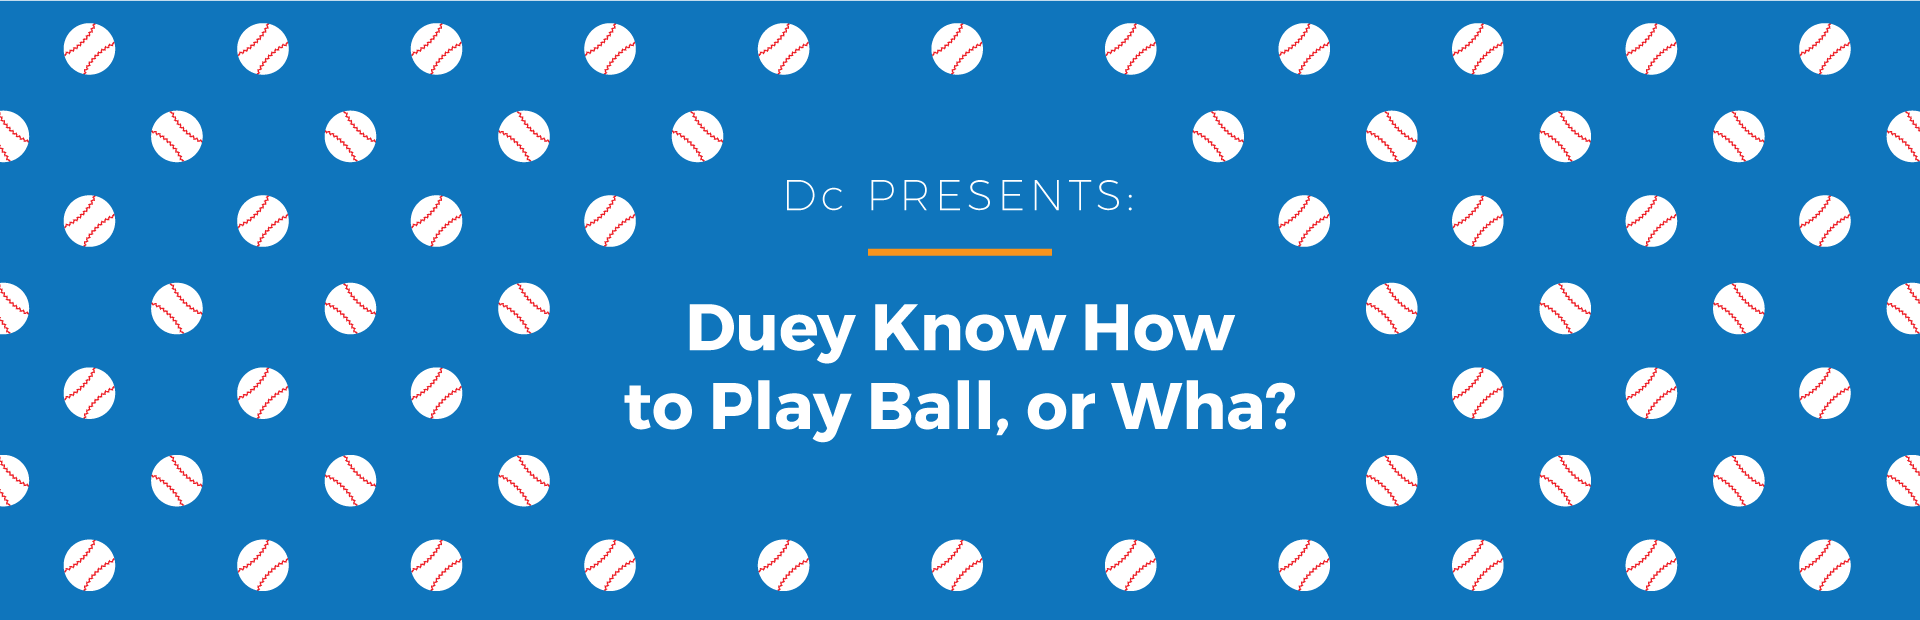 Dc presents: Duey Know How to Play Ball or Wha?